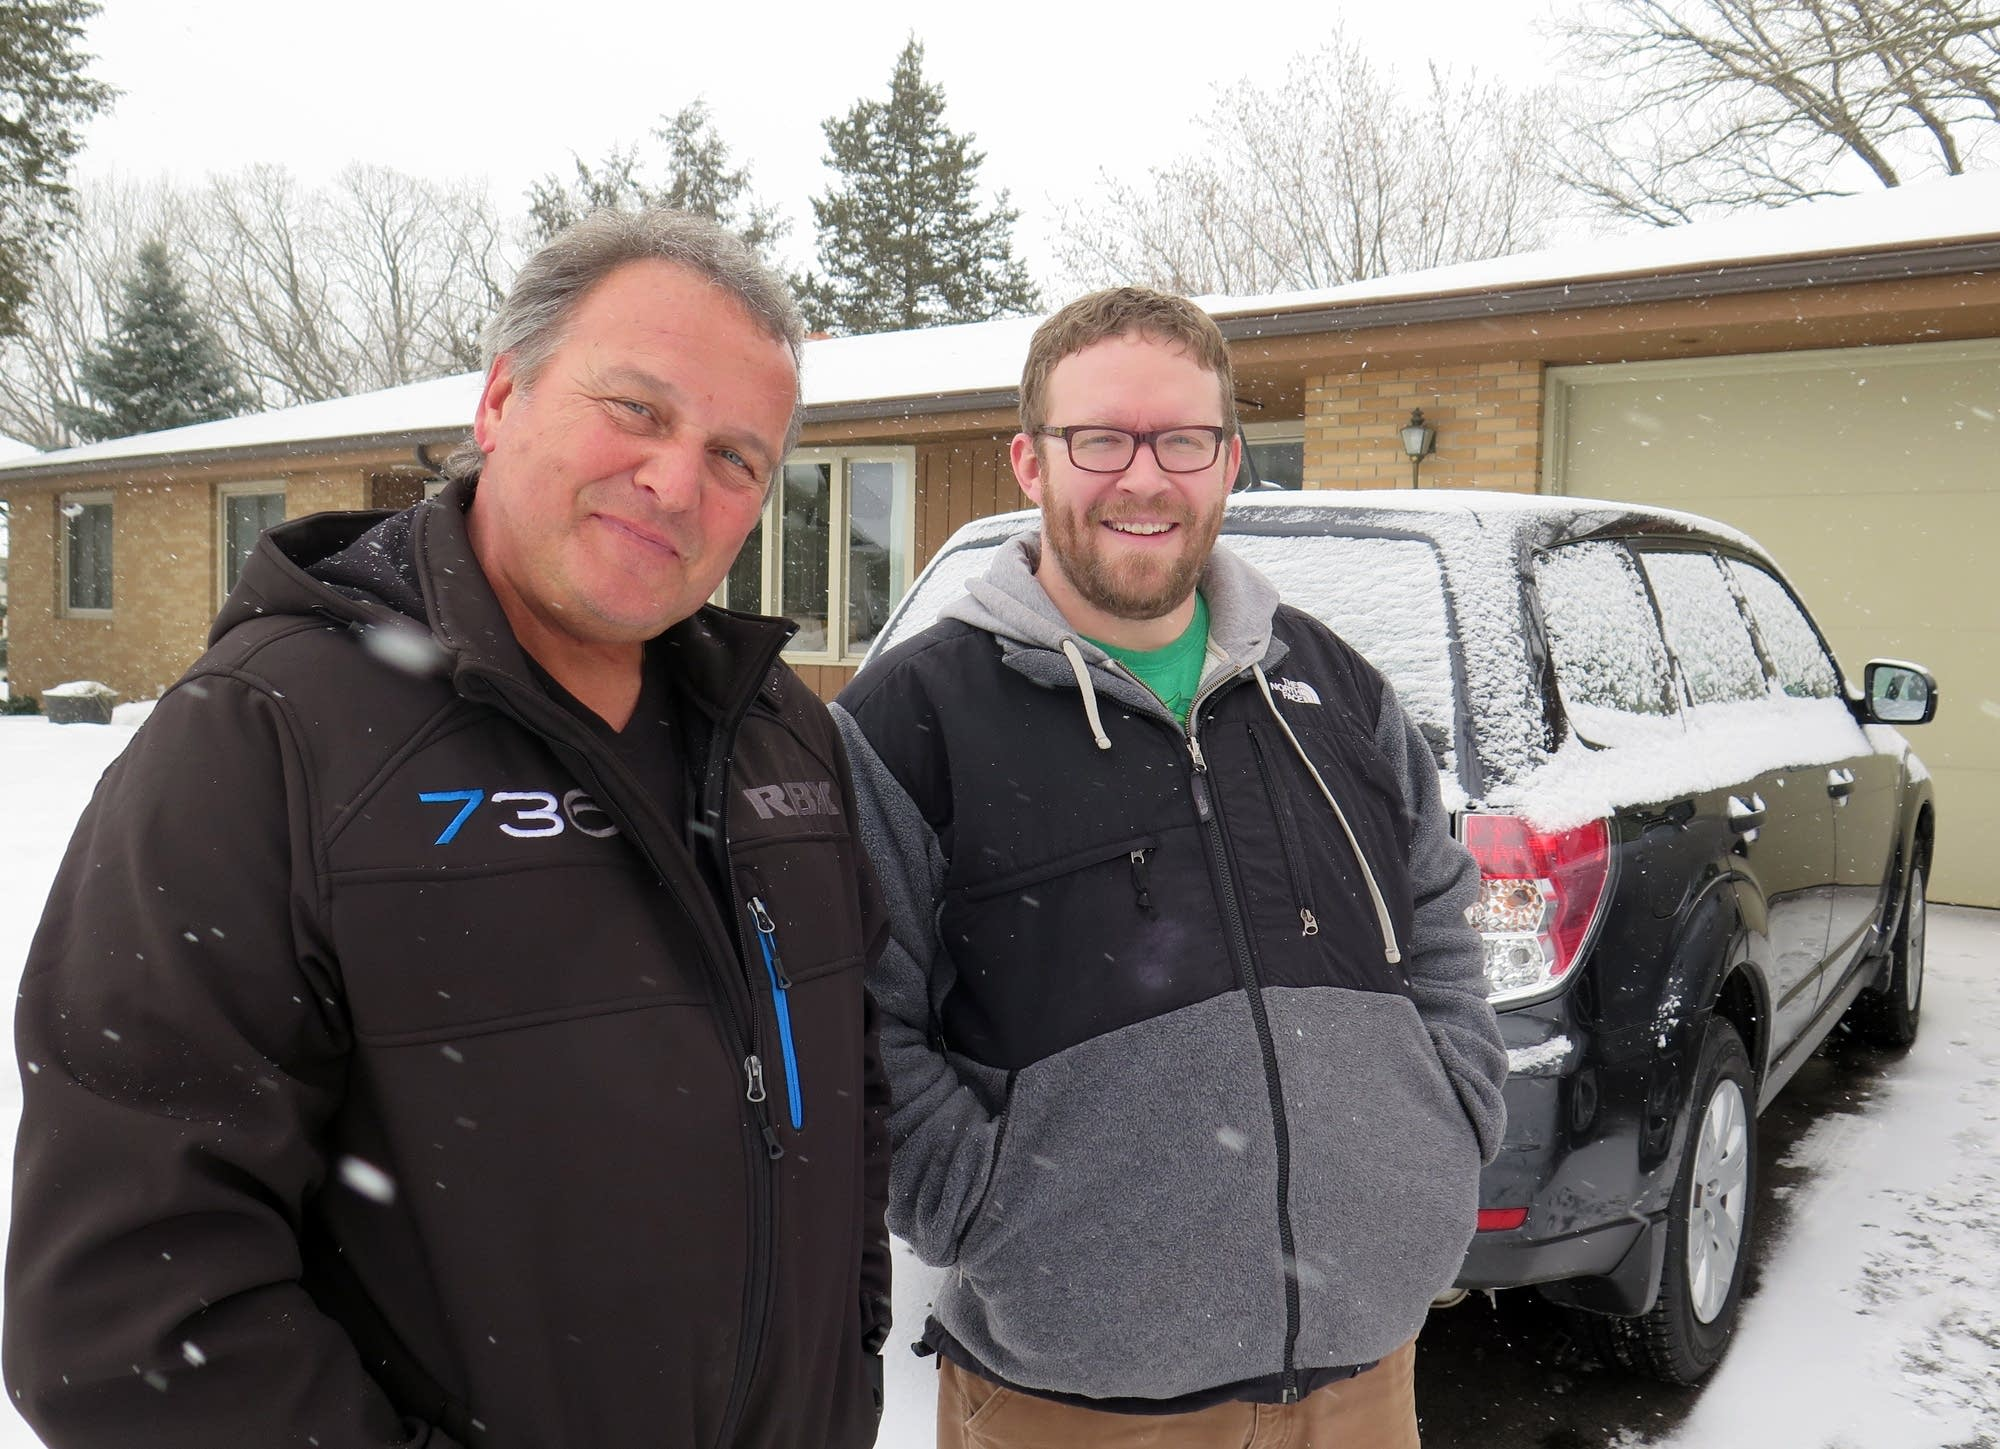 Eagles fan Robert Inverso, left, rented Eric Patenaude's Subaru Forester.